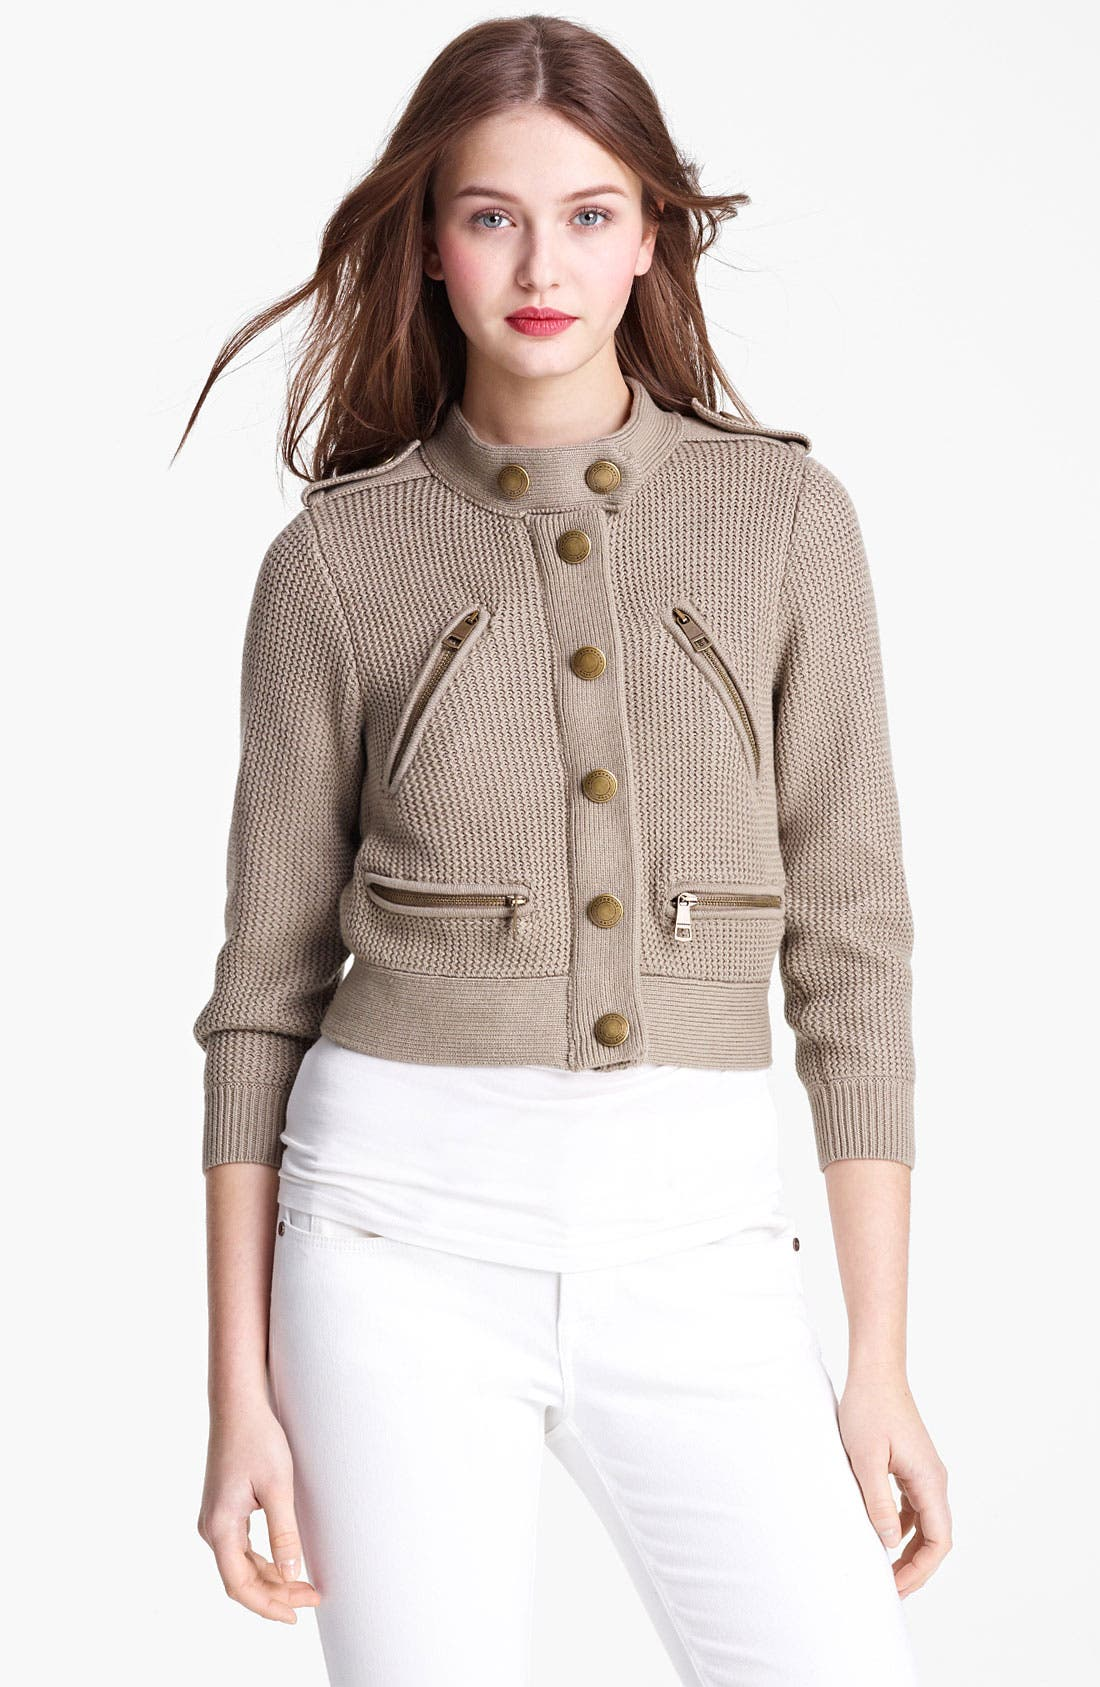 Alternate Image 1 Selected - Burberry Brit Knit Cardigan (Online Only)